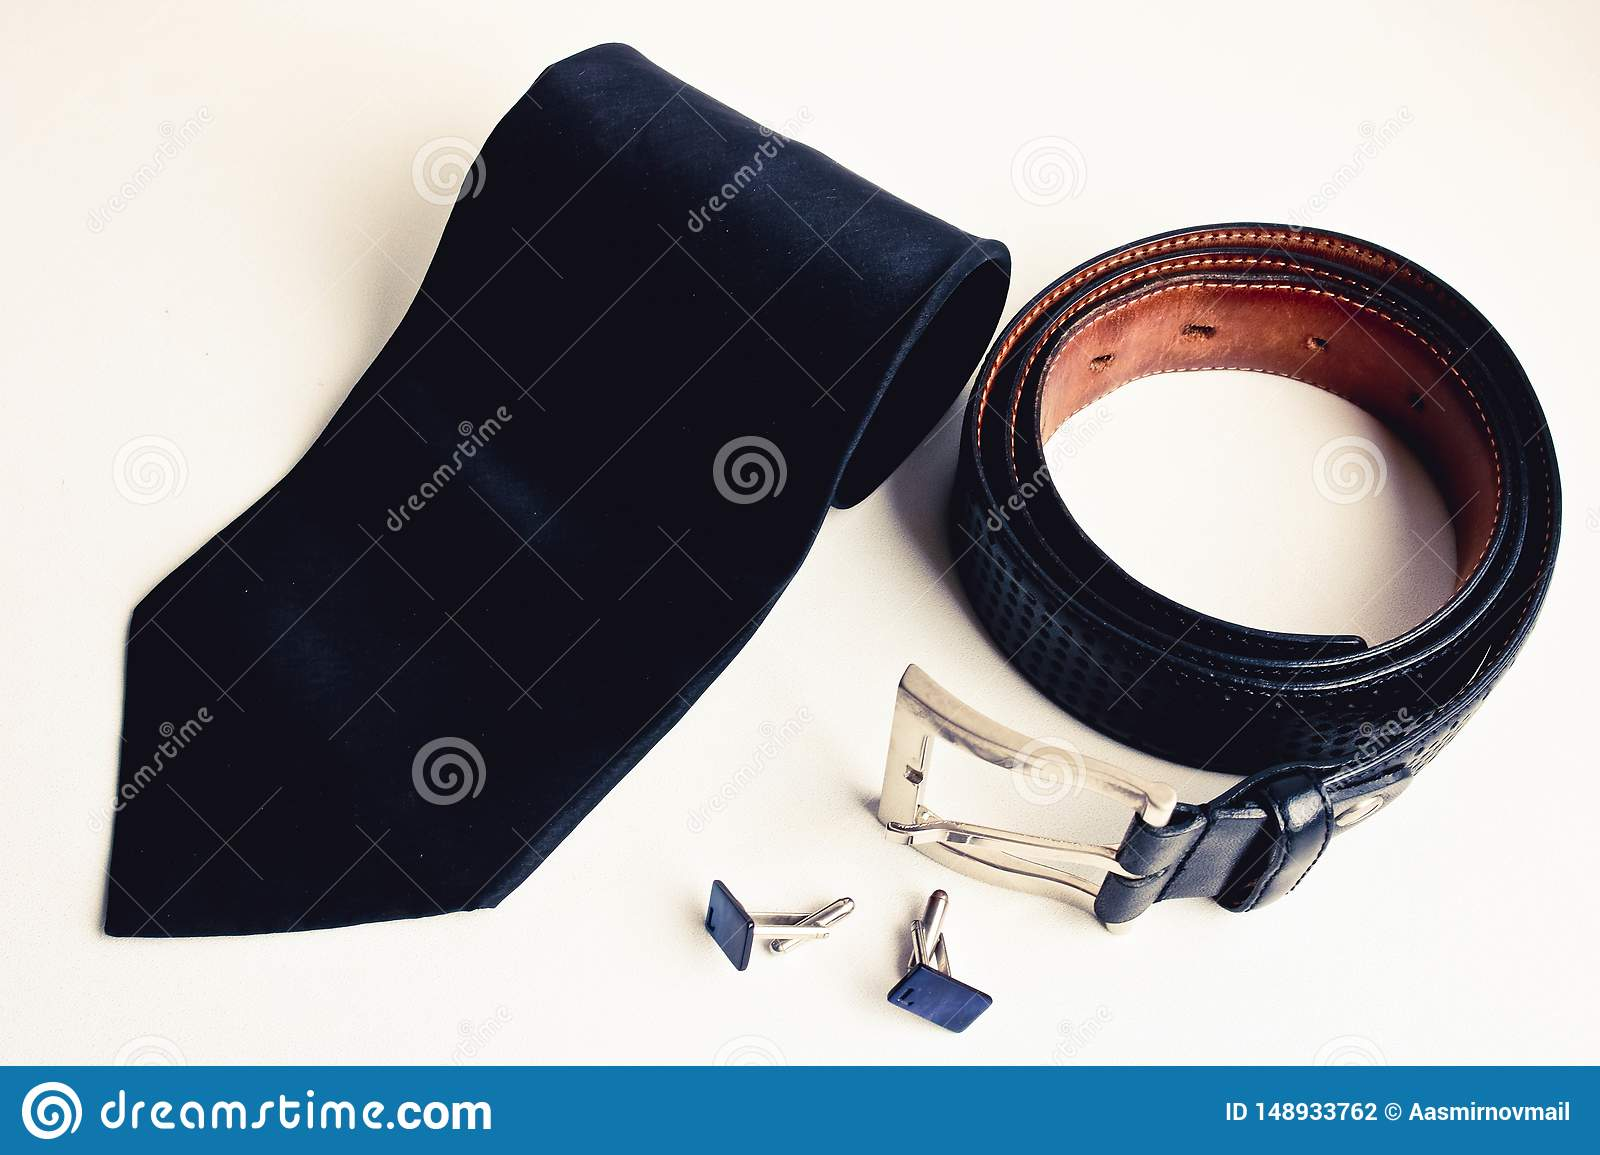 Top view of luxury men`s accessories. Black silk tie, black leather belt and cufflinks.